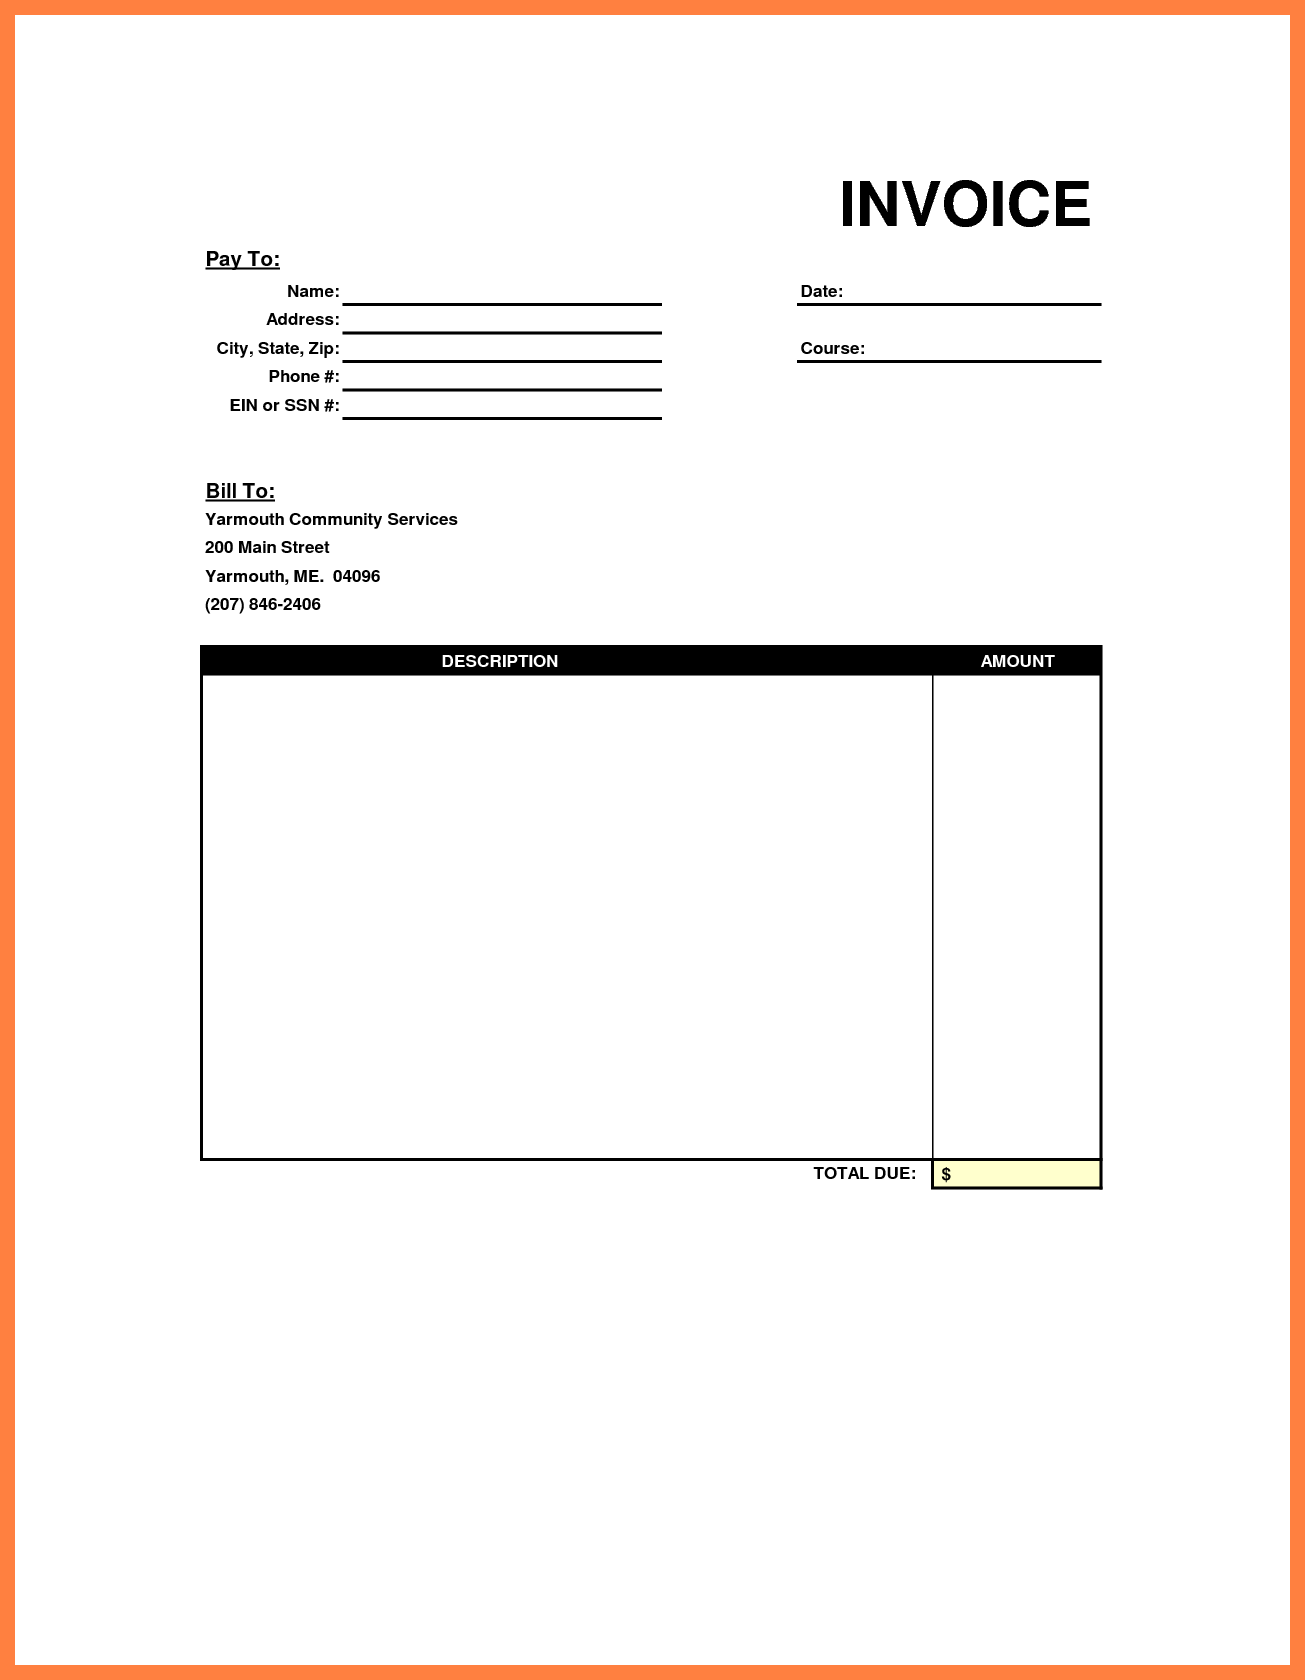 Paid Bills Template and Very Simple Invoice Template Sample with Blank Space In the Pay to